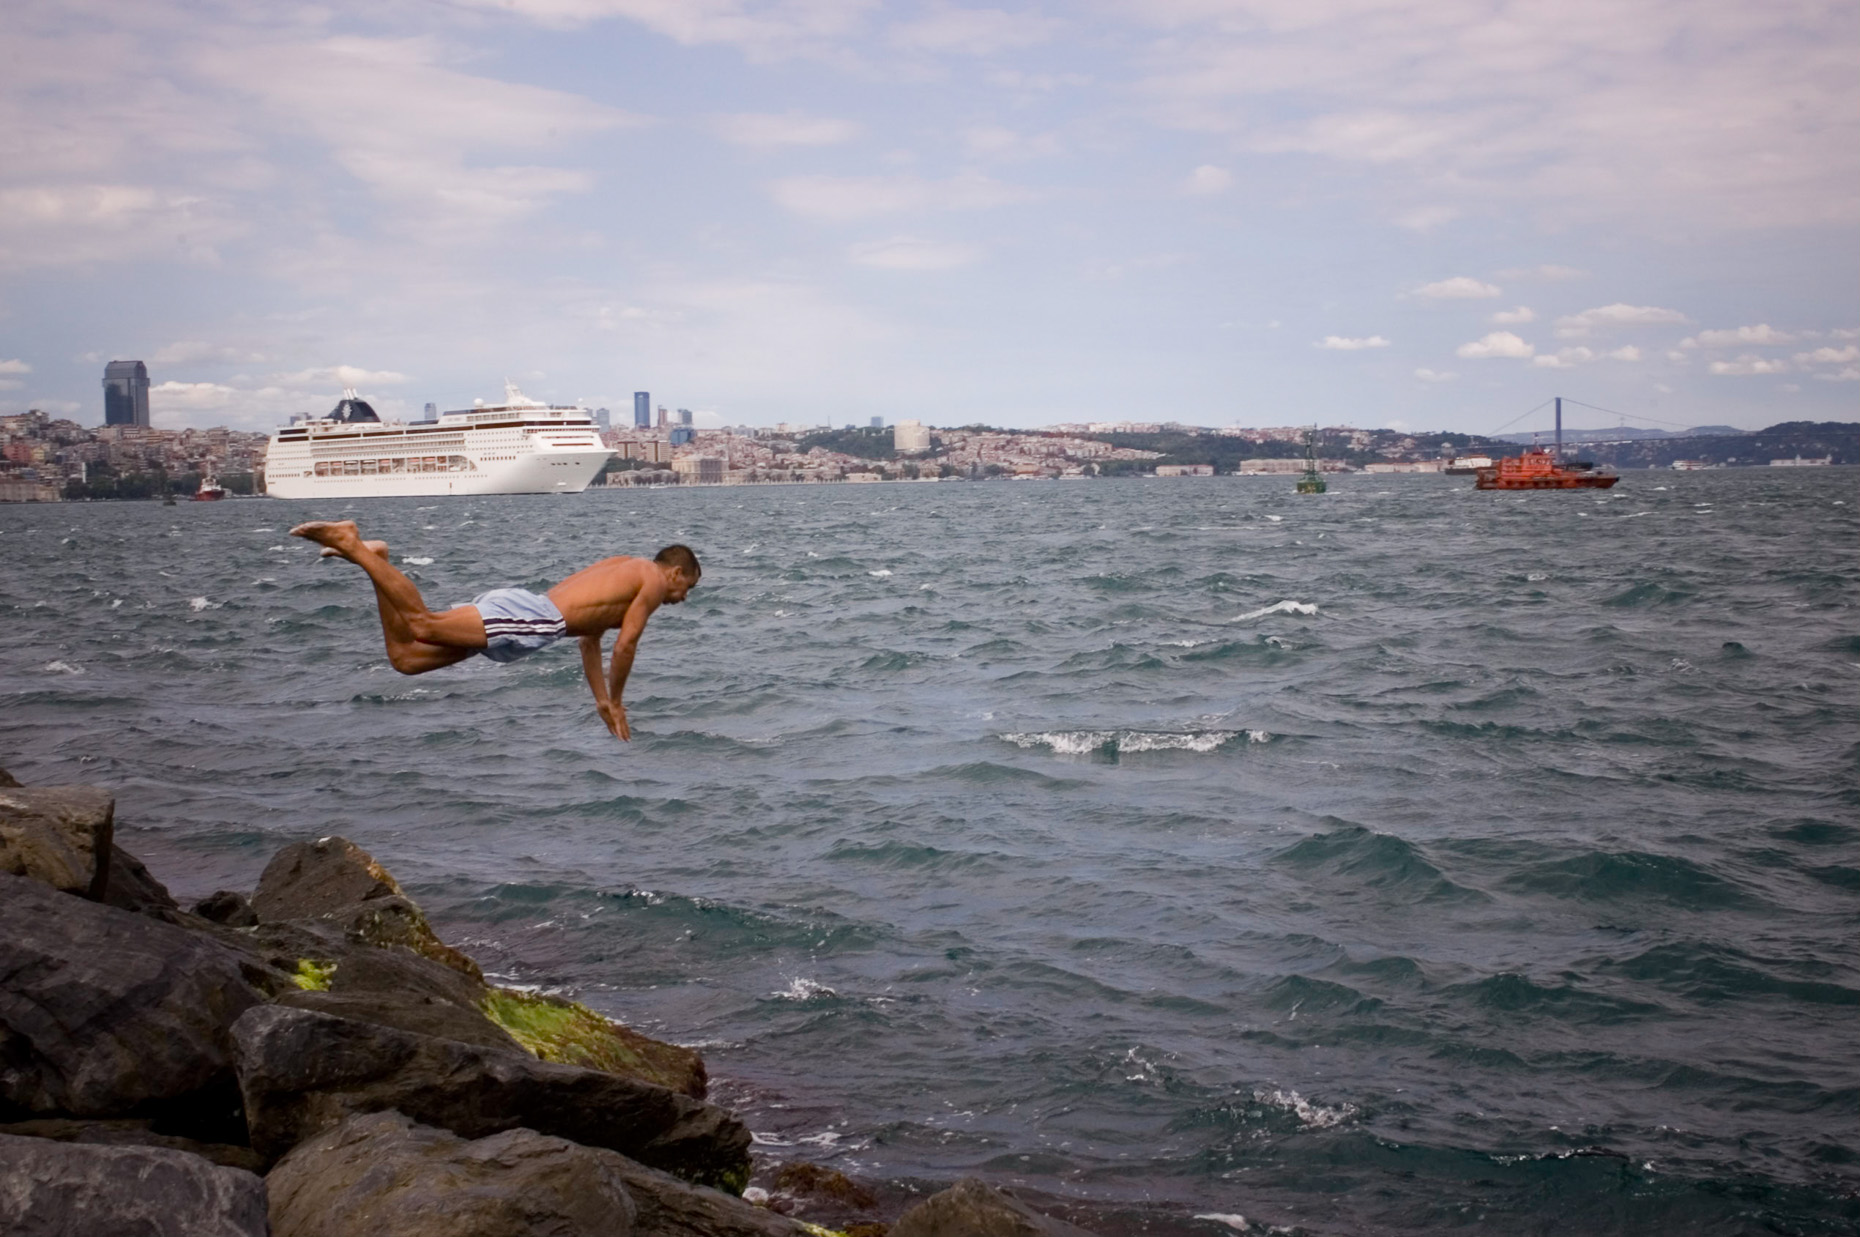 Image of man diving into the Bosporus Sea with cruise ship in background Istanbul Turkey.